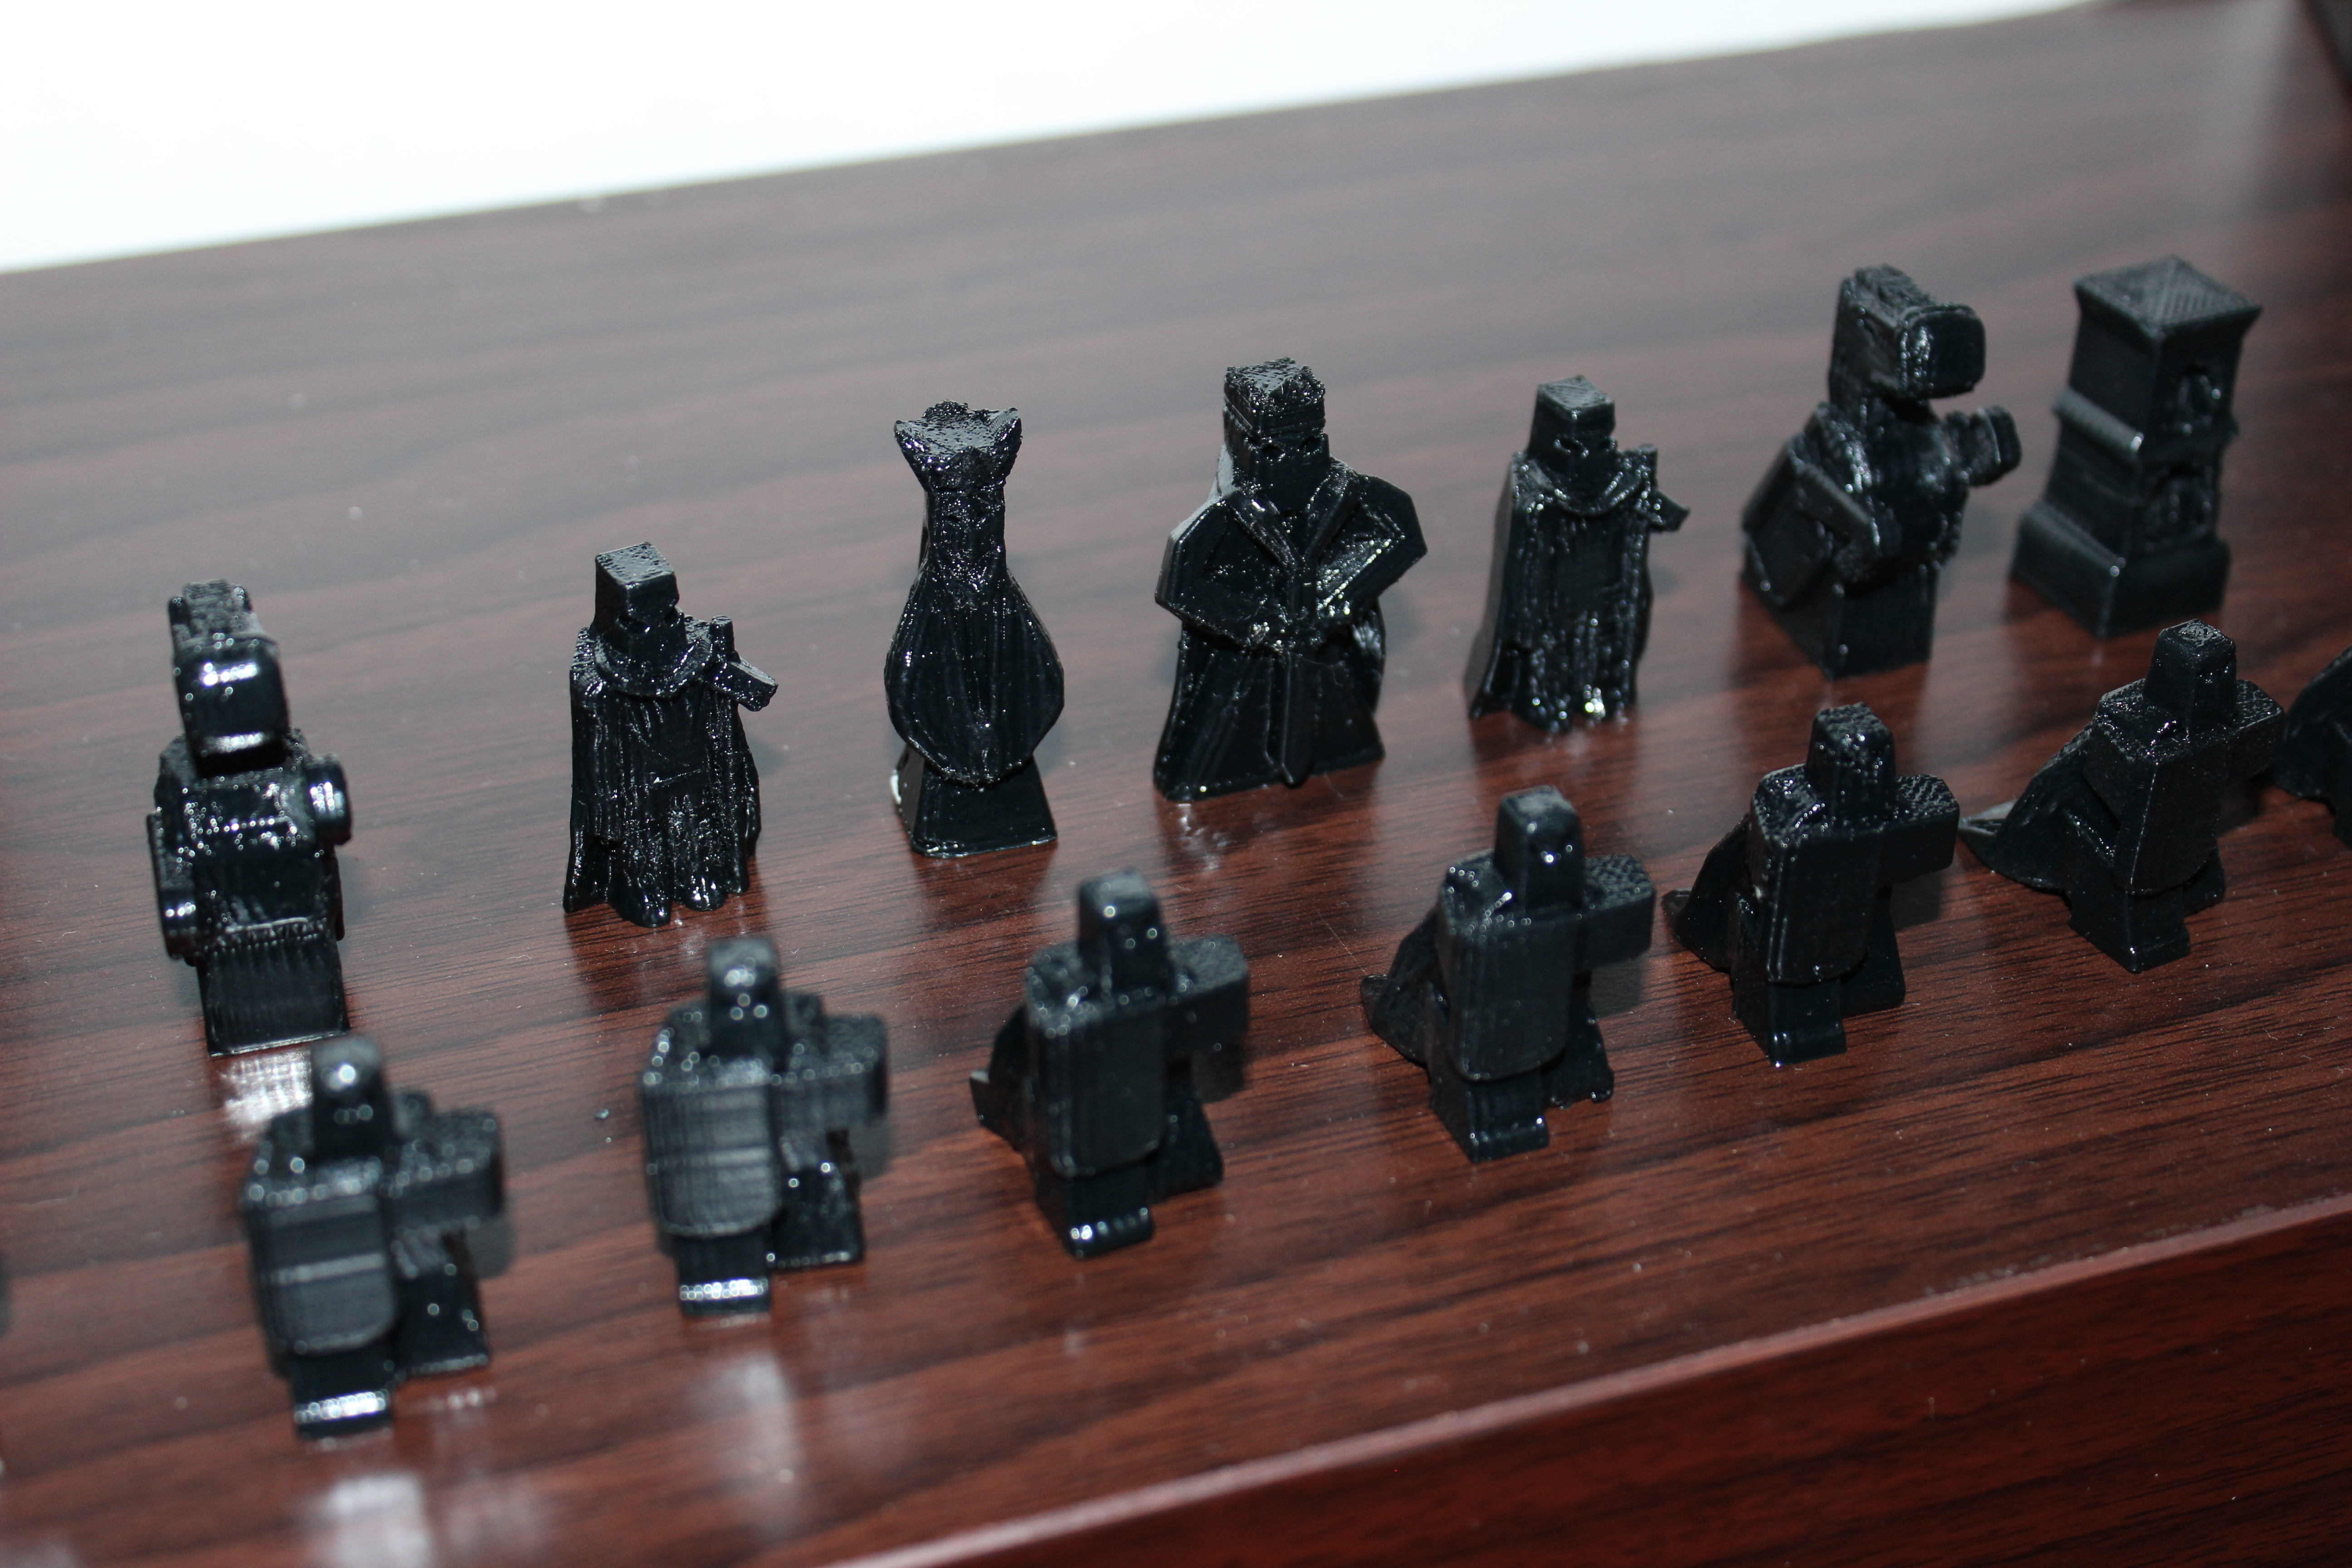 warriors chess set/ juego de ajedrez guerreros 3D Print 192011